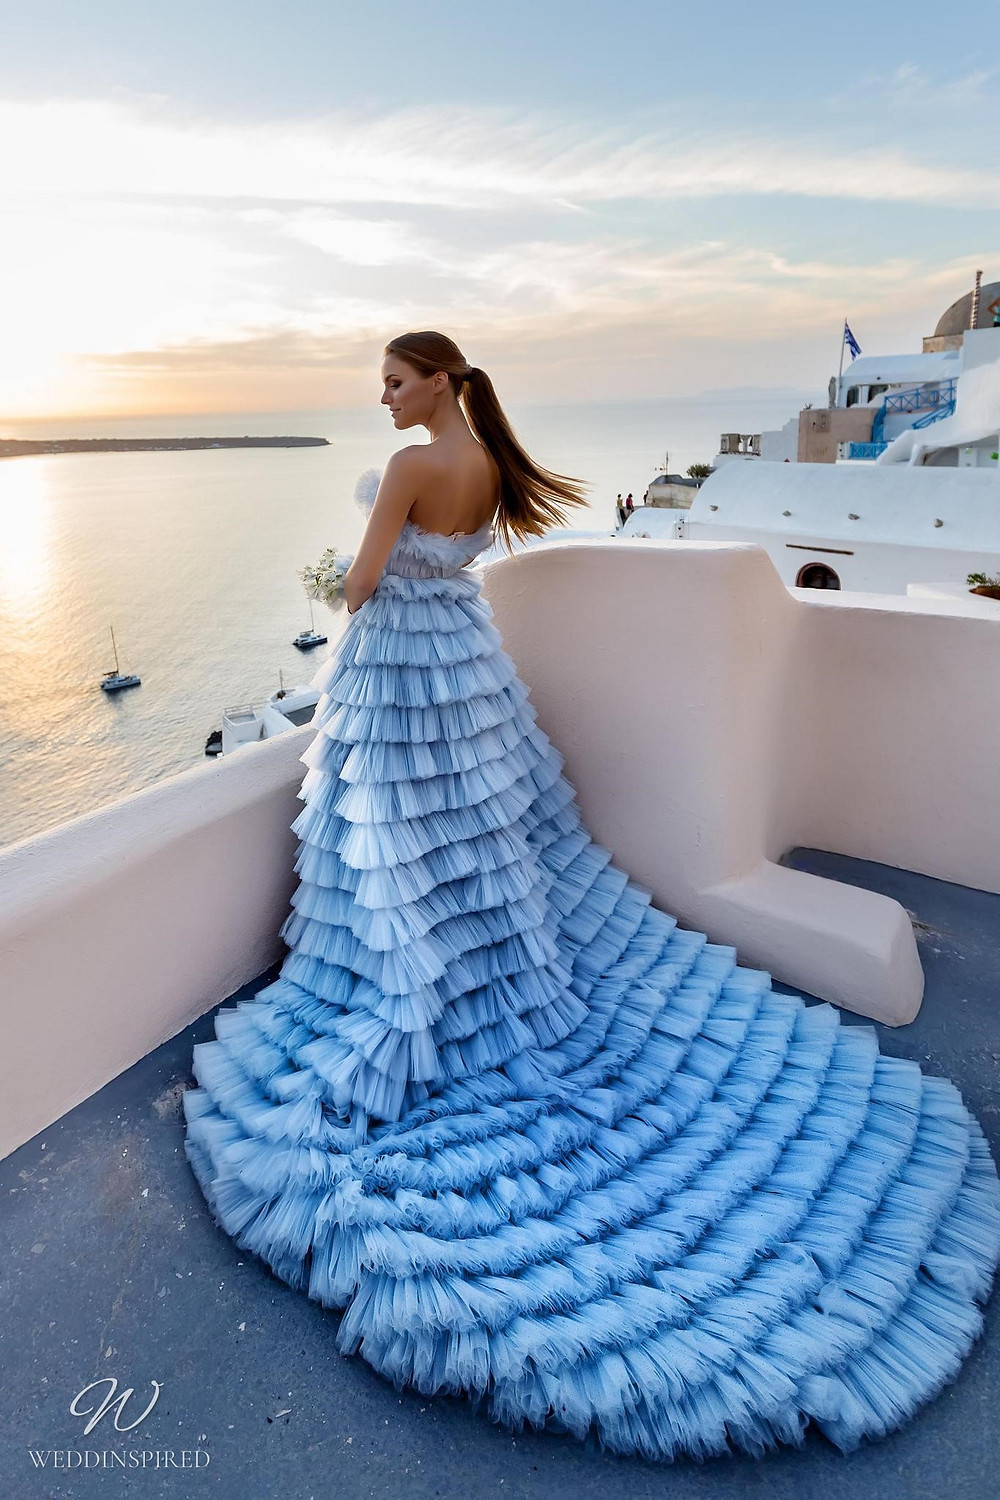 A Ricca Sposa blue strapless Cinderella ball gown wedding dress with a tulle ruffle skirt